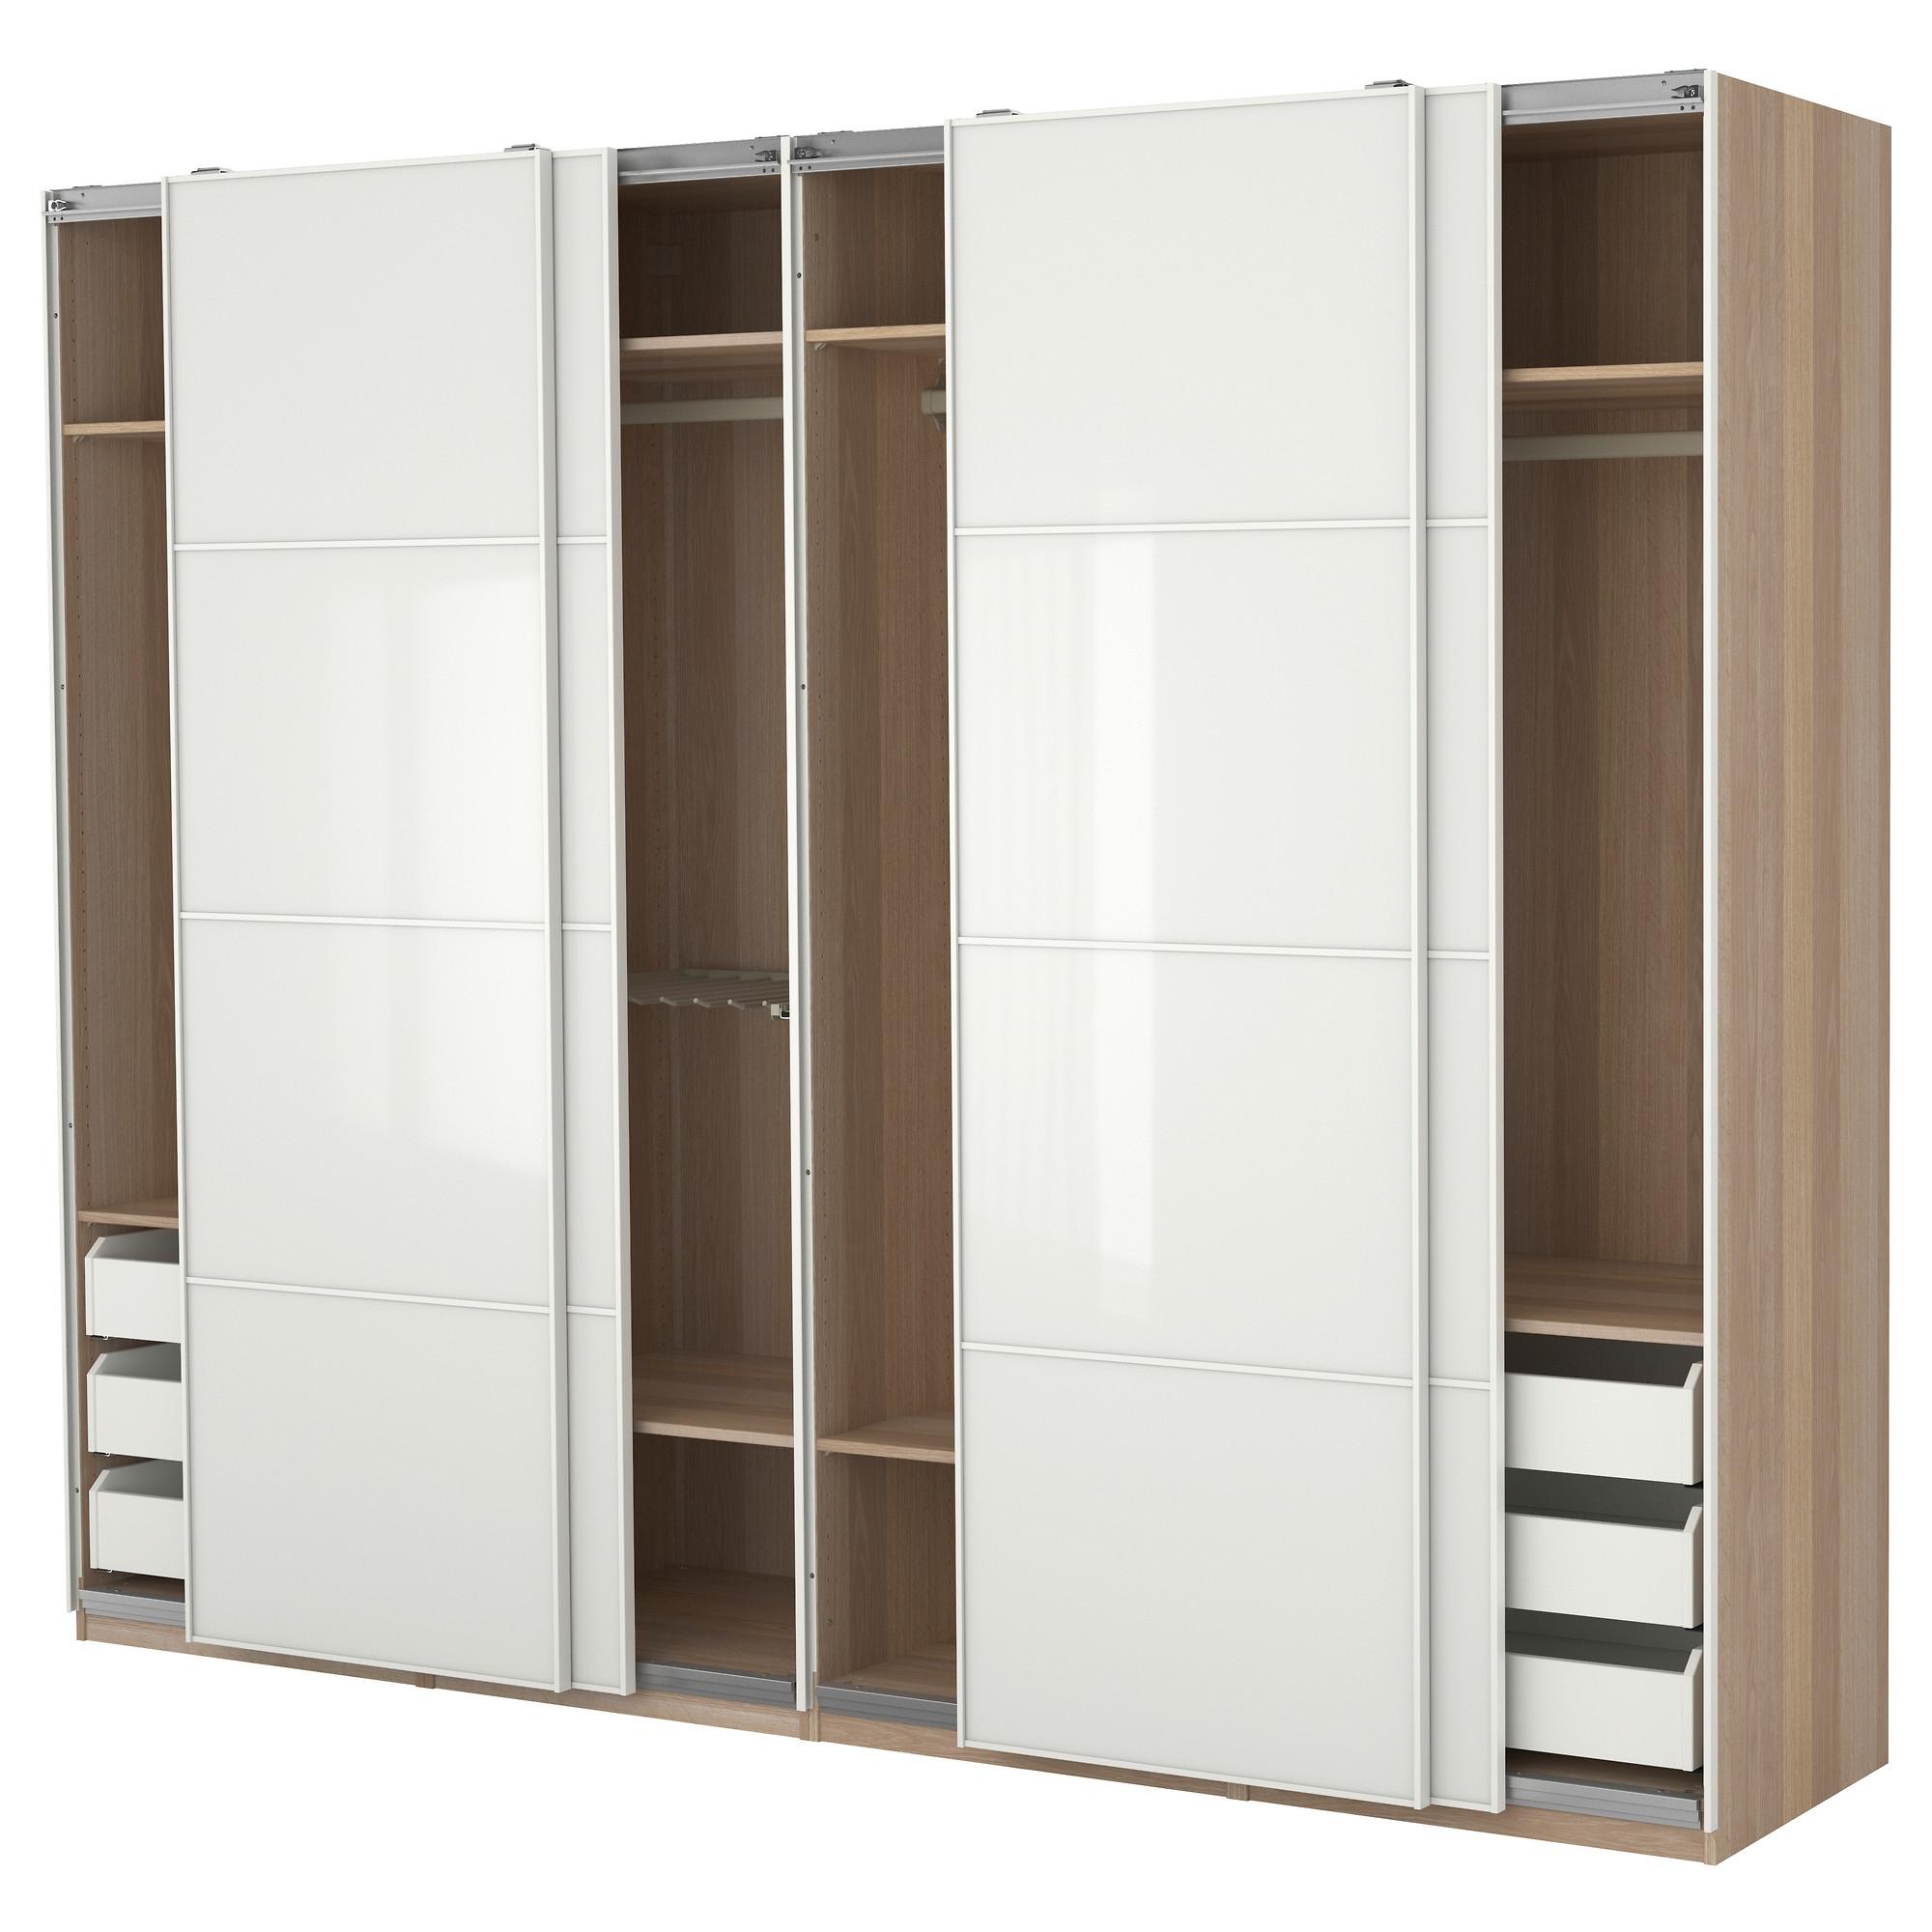 Oversized White Lacquer Glossy Solid Wood Tall Wardrobe Closet For Solid Wood Wardrobe Closets (View 8 of 25)